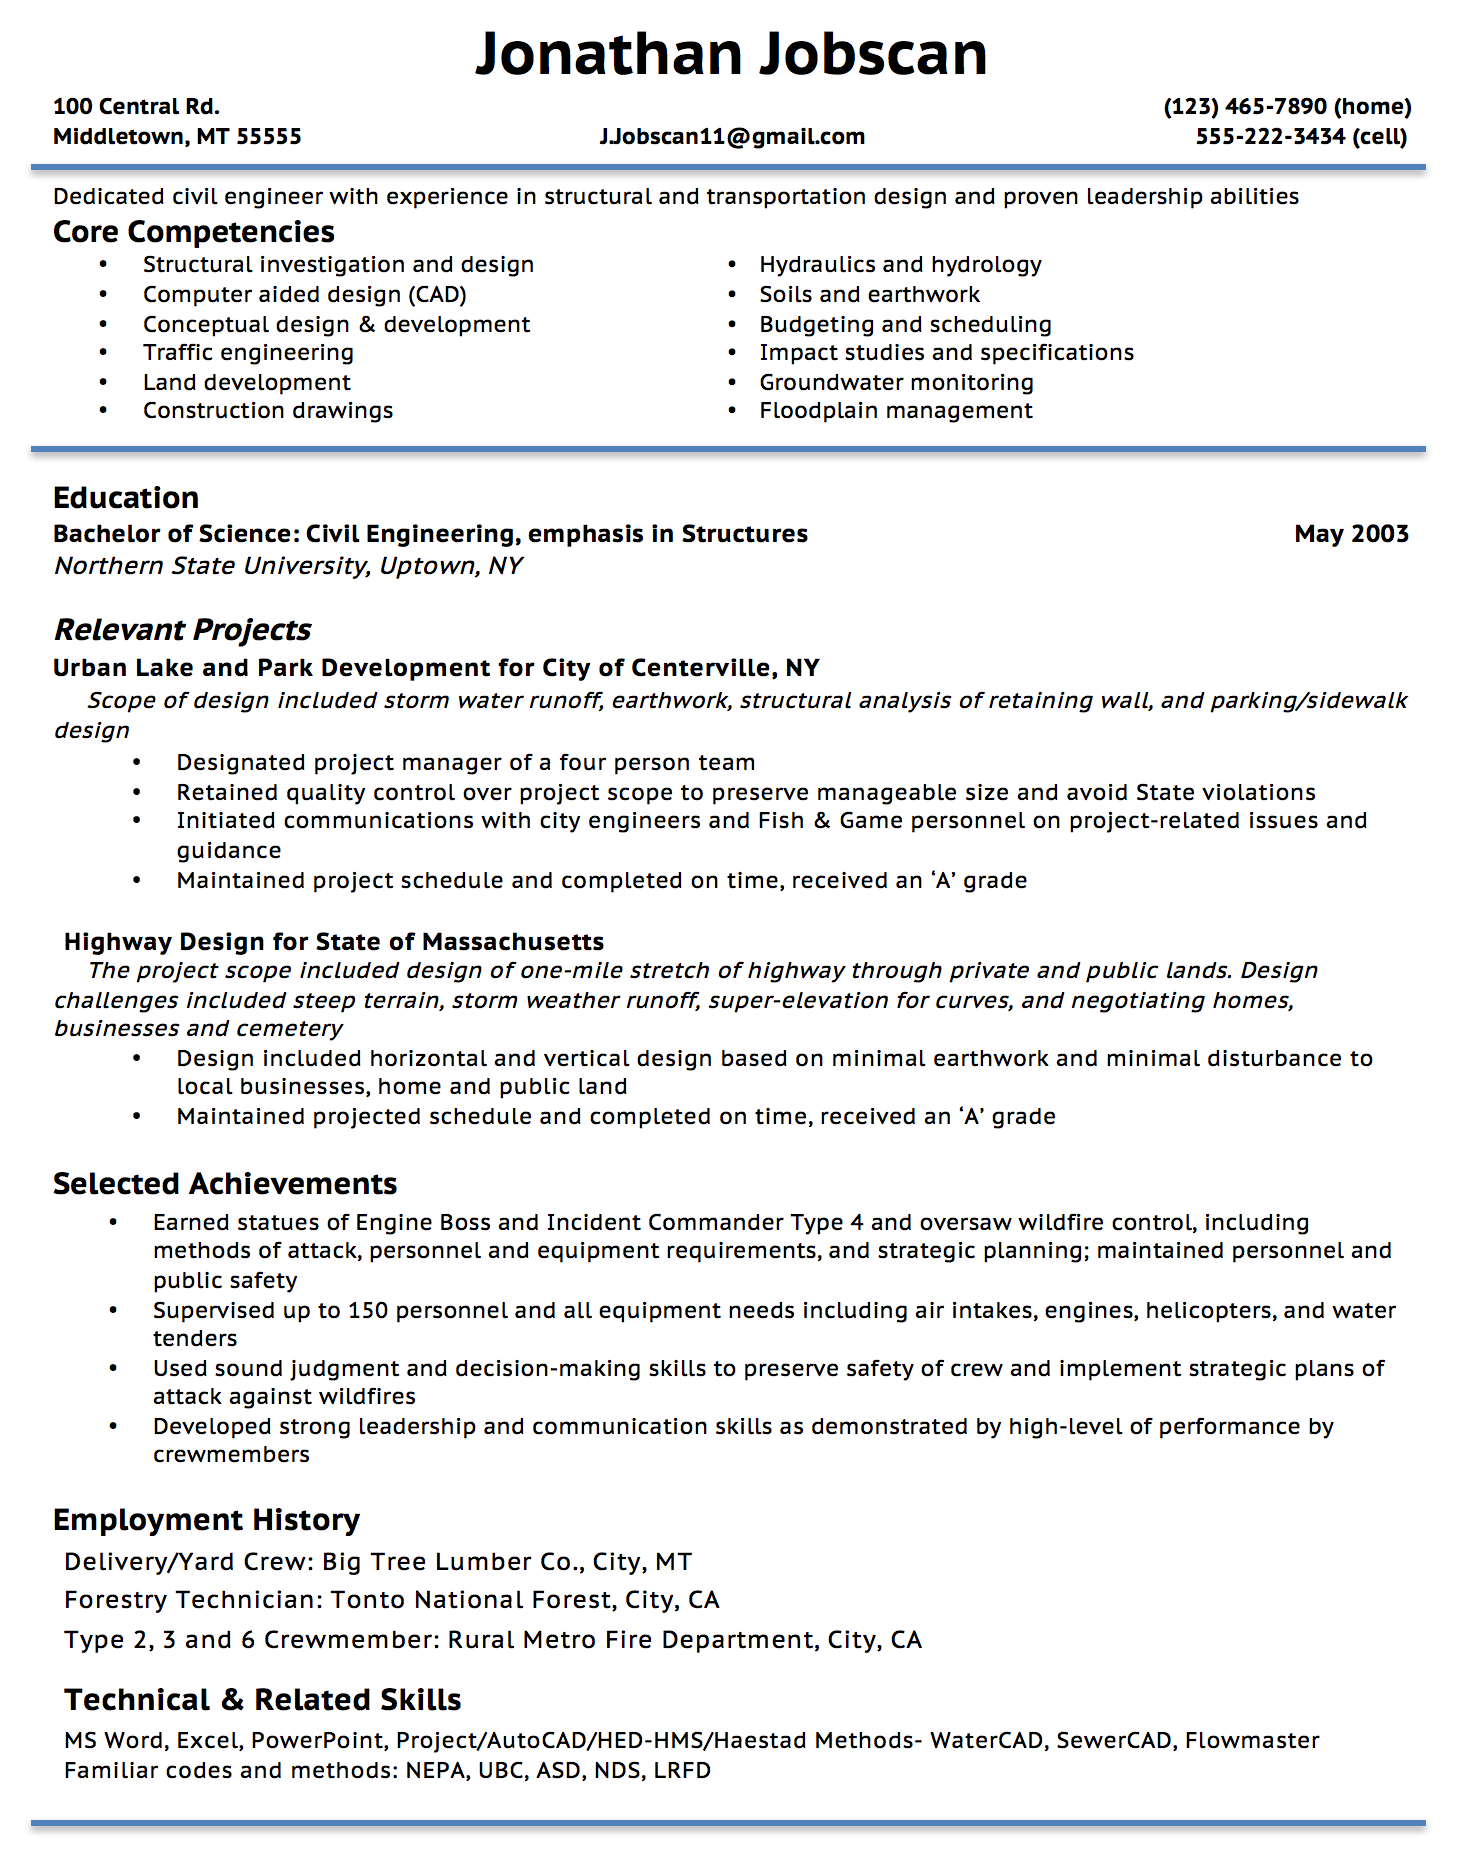 Functional Resume Example Inside Resume Guide